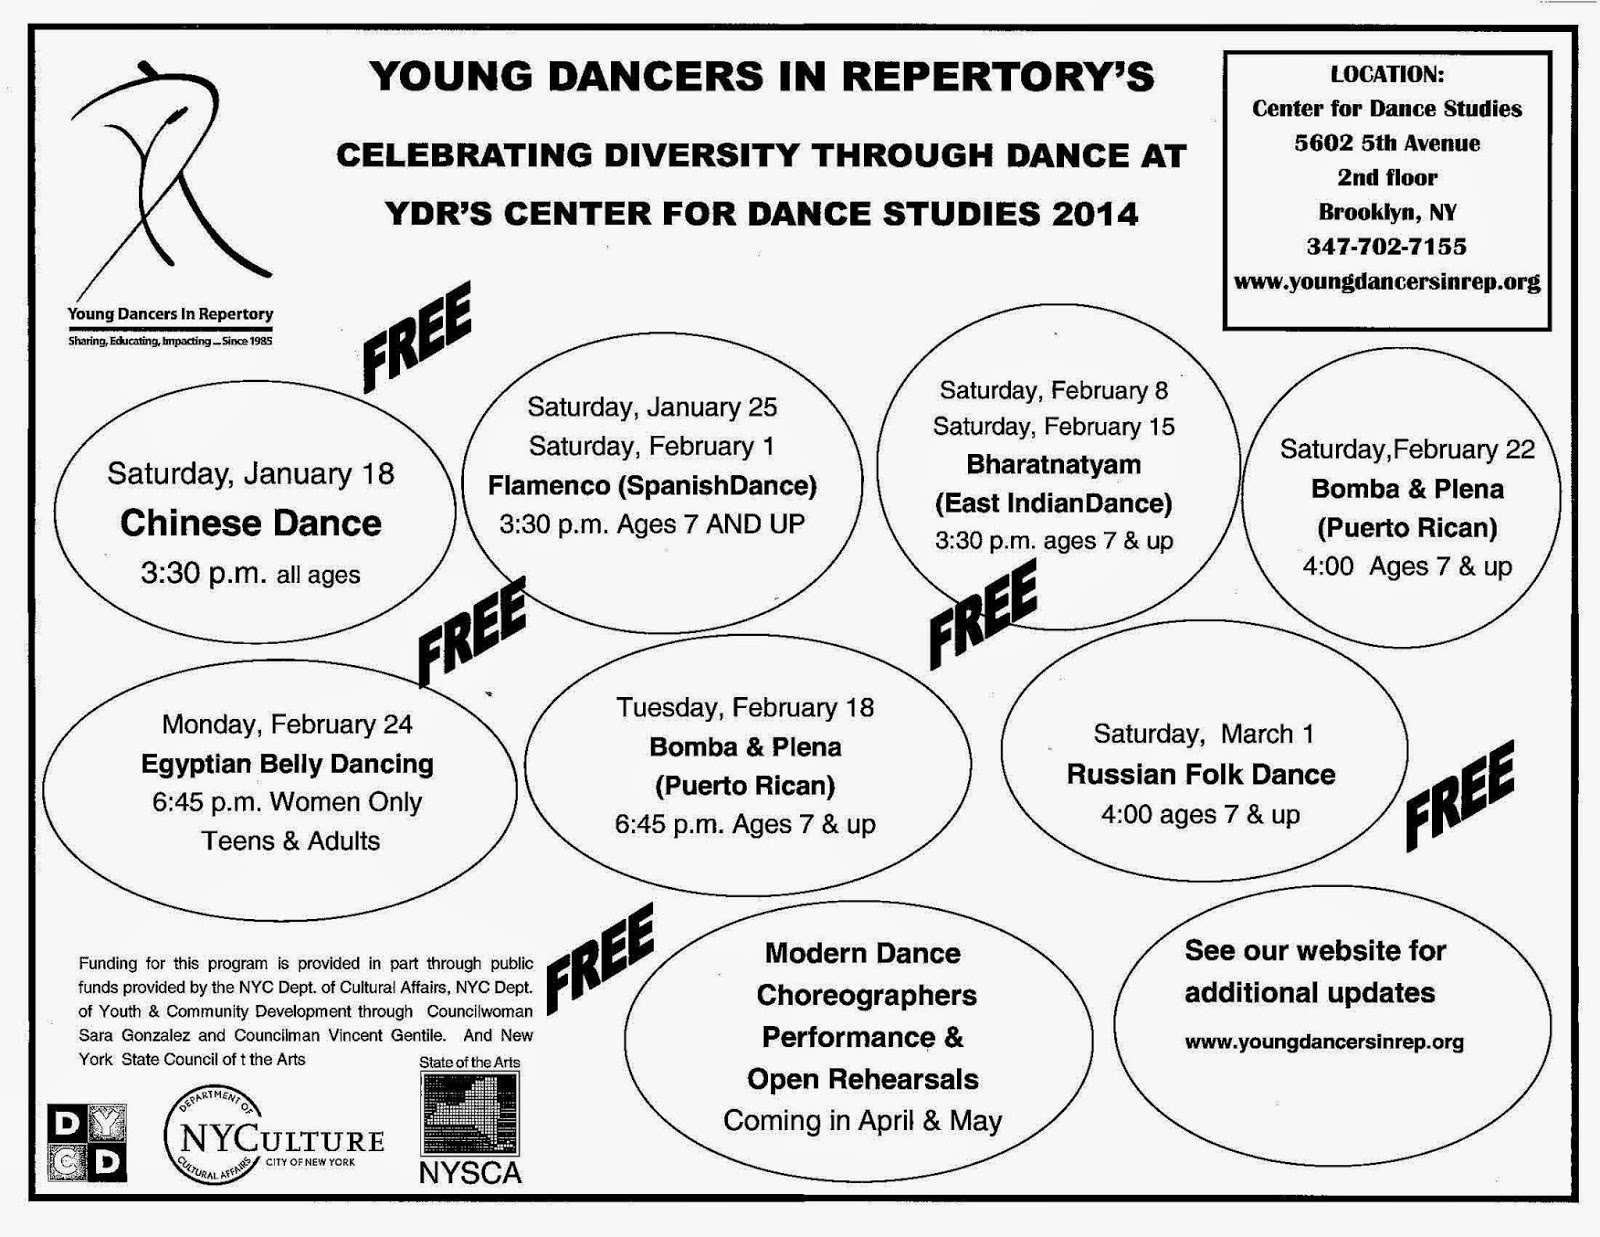 Friends of Sunset Park: Young Dancers in Repertory invites